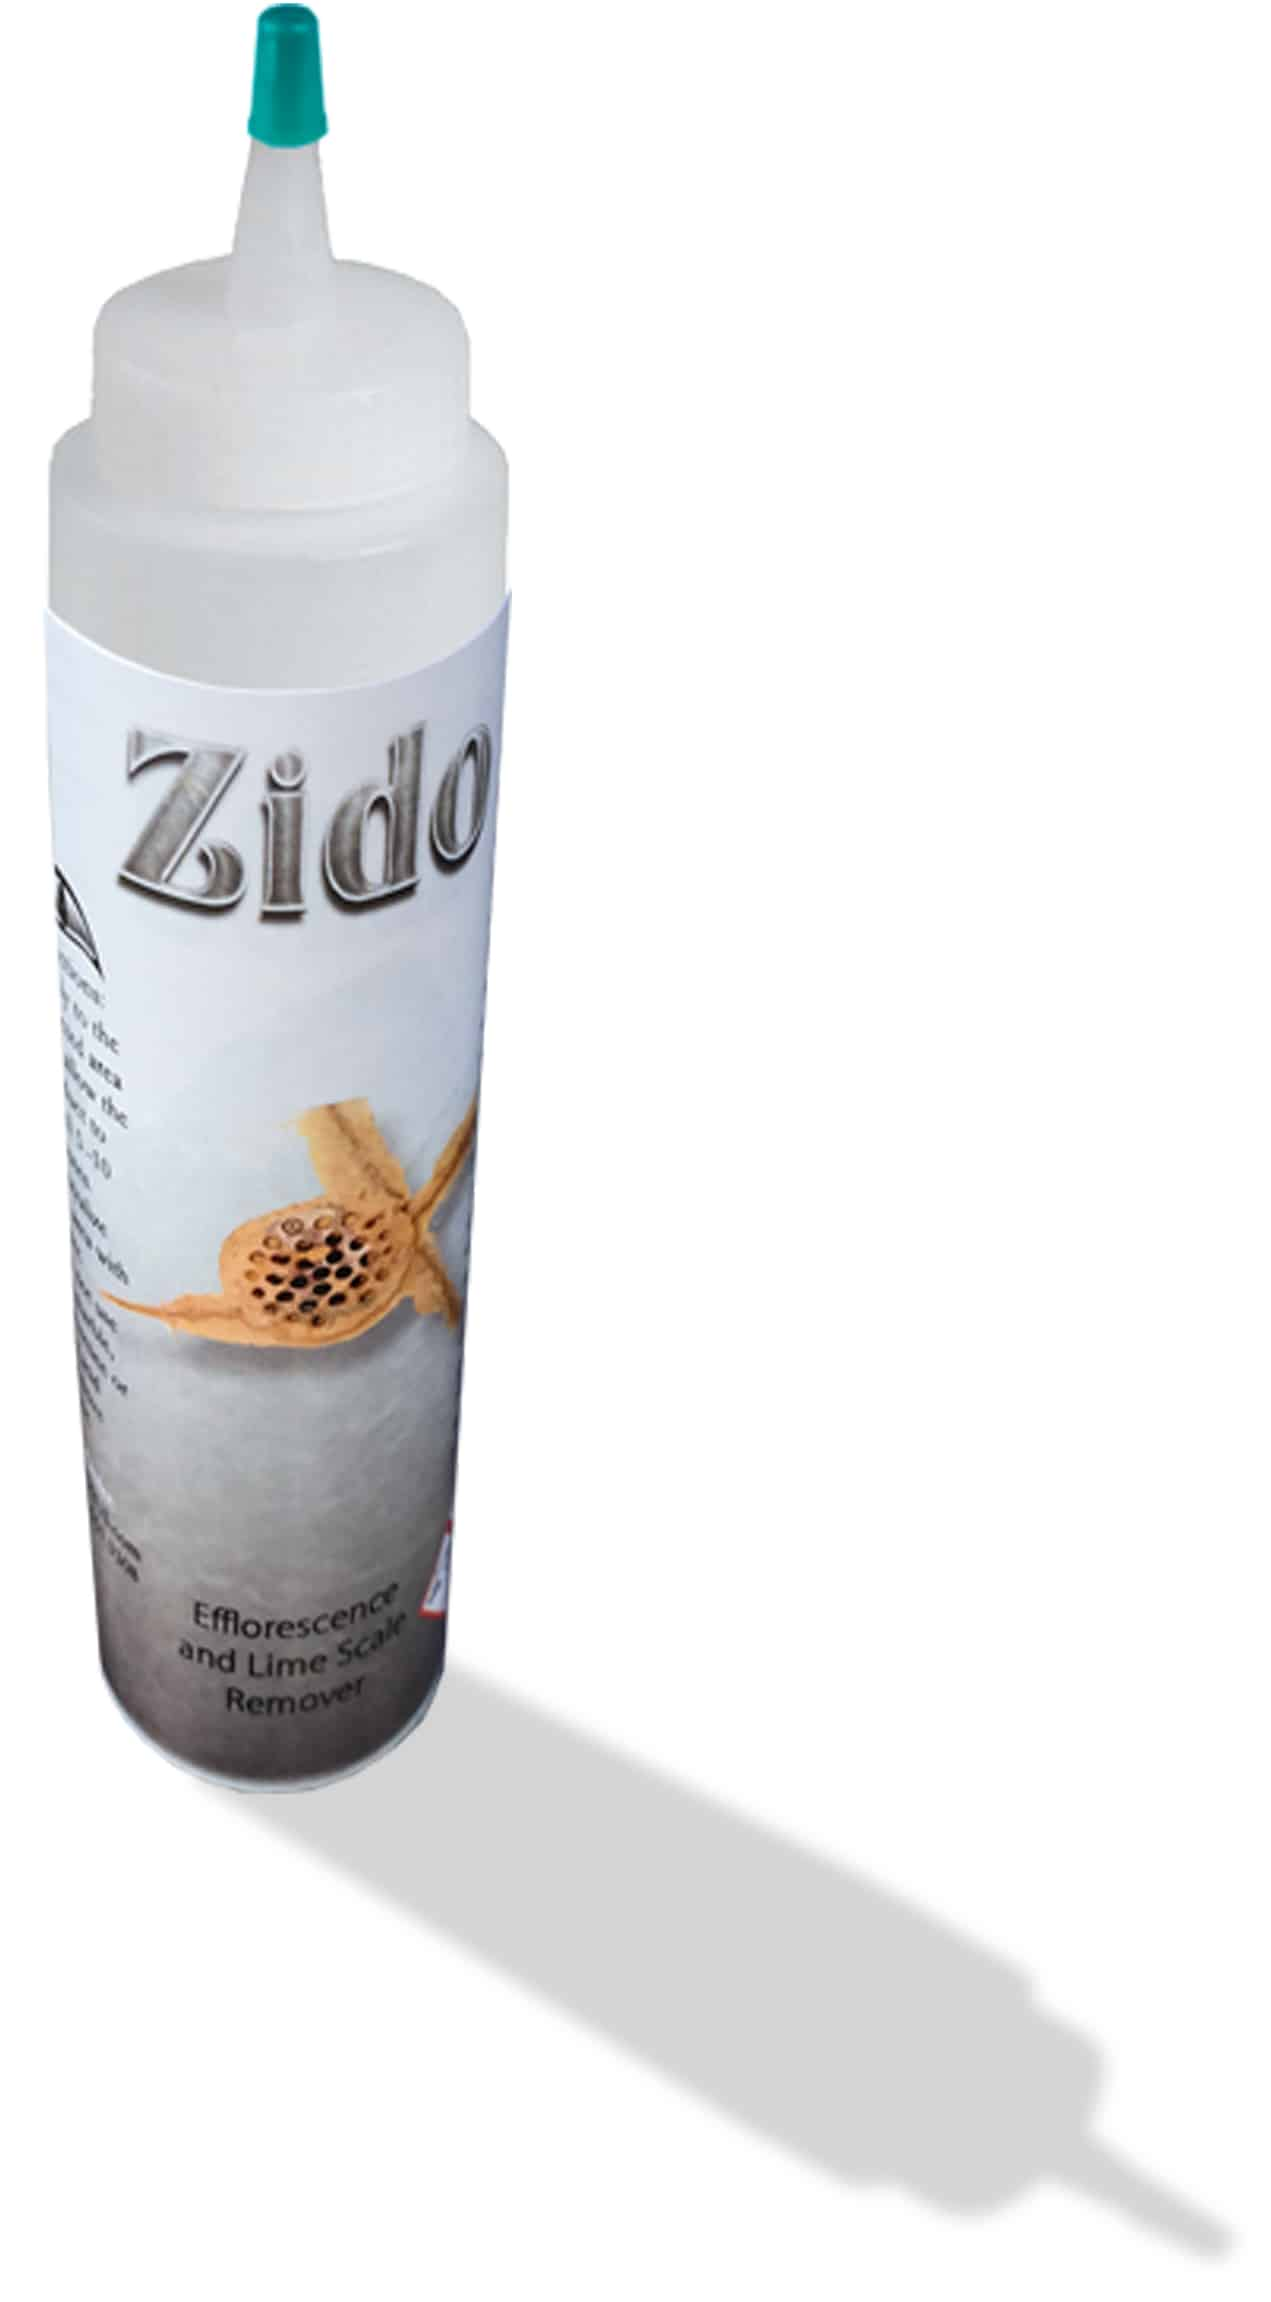 How to Remove Efflorescence - Zido